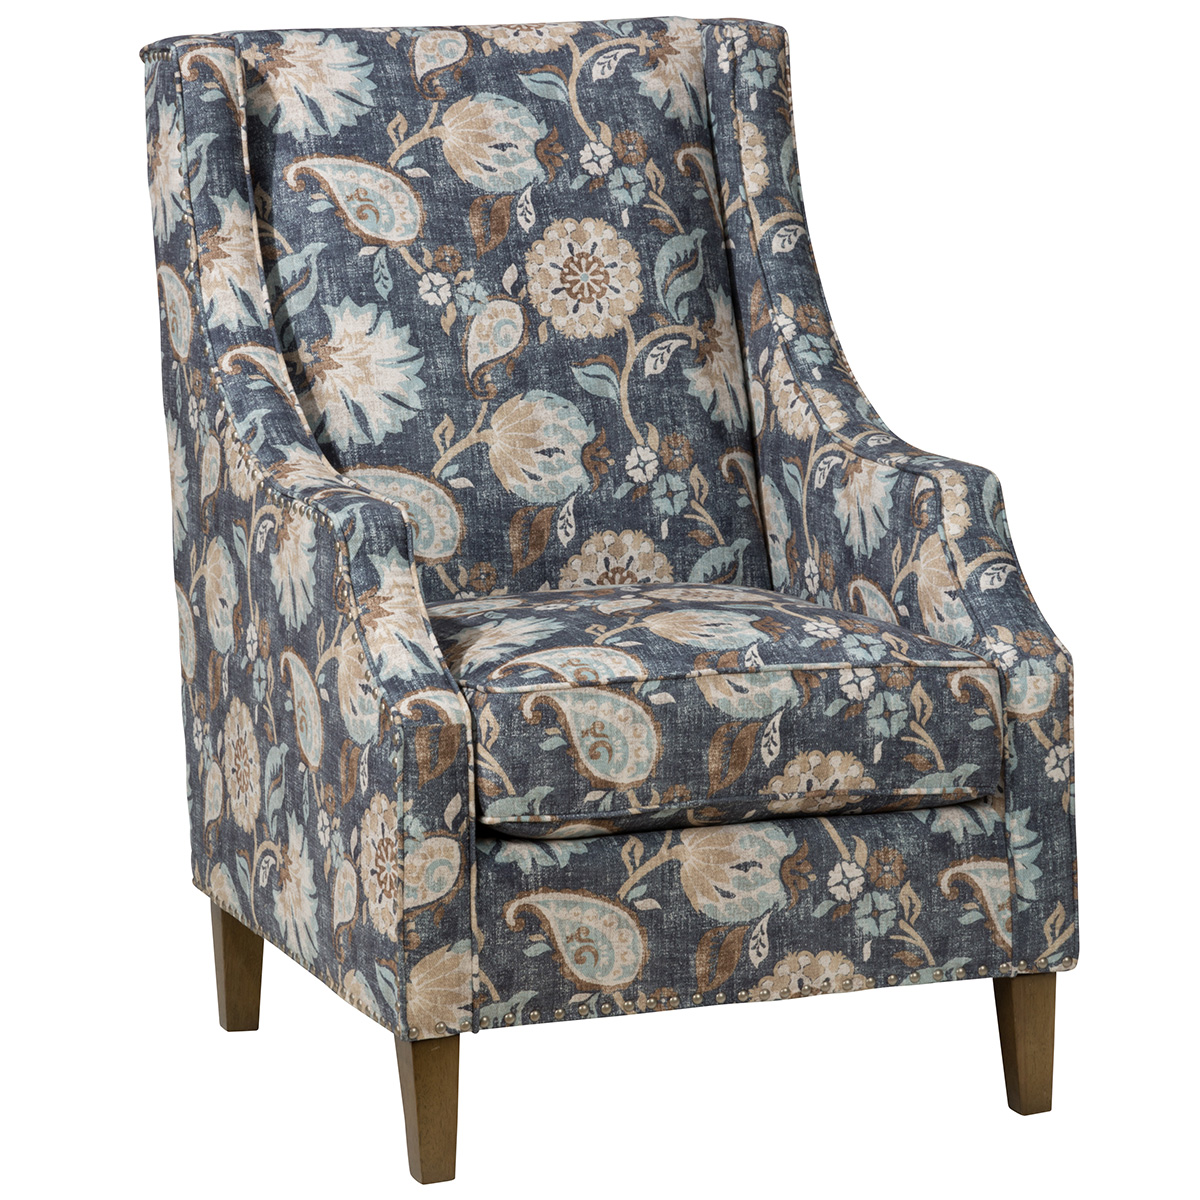 Westbrook Accent Chair In Blue Floral Fabric W/ Nailhead Trim